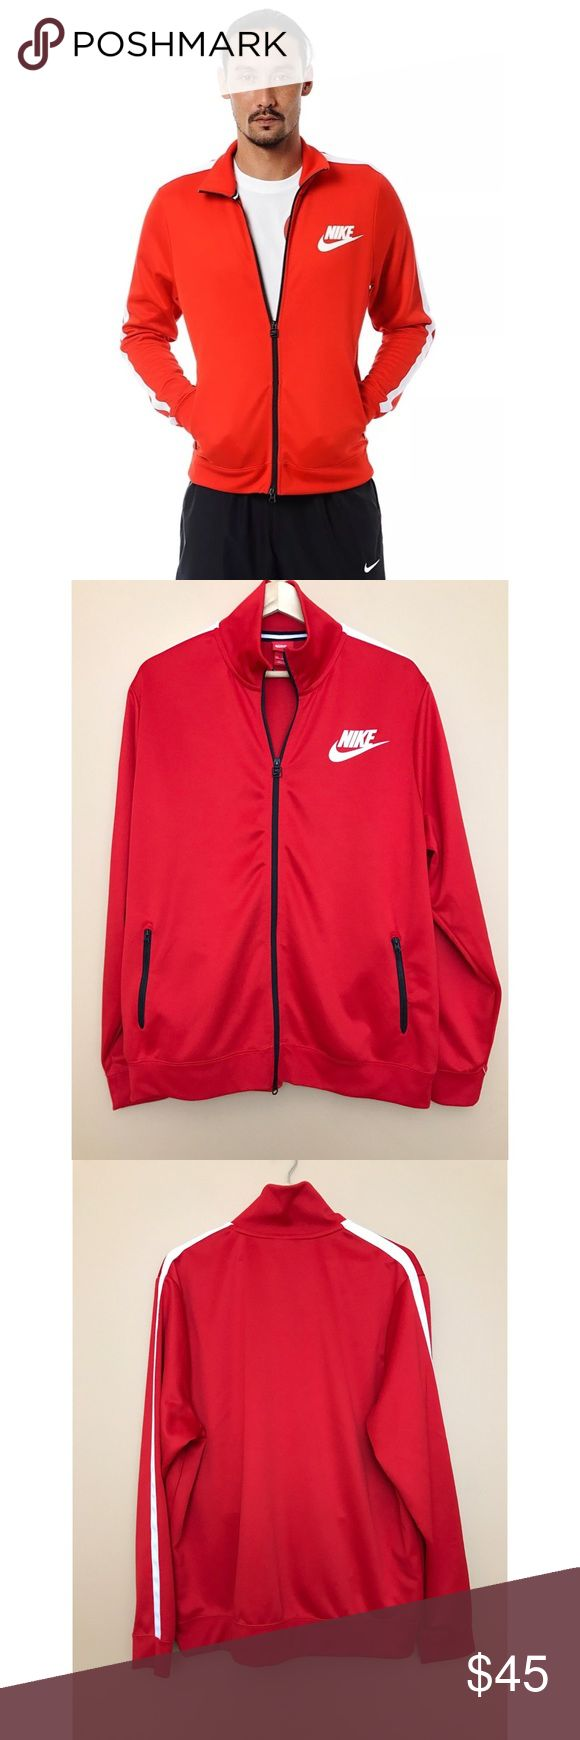 """Nike Jacket Red White Tracksuit Jacket Sweater Pen markings on the left sleeve. Top of the left shoulder has stains on the white strip. (Pictured)  100% Polyester  Machine washable  Size 2XL  Approximately: 30"""" Long 28"""" Pit to pit 27.5"""" Sleeves 19.5"""" Shoulder 3.5"""" Collar Nike Tops Sweatshirts & Hoodies"""